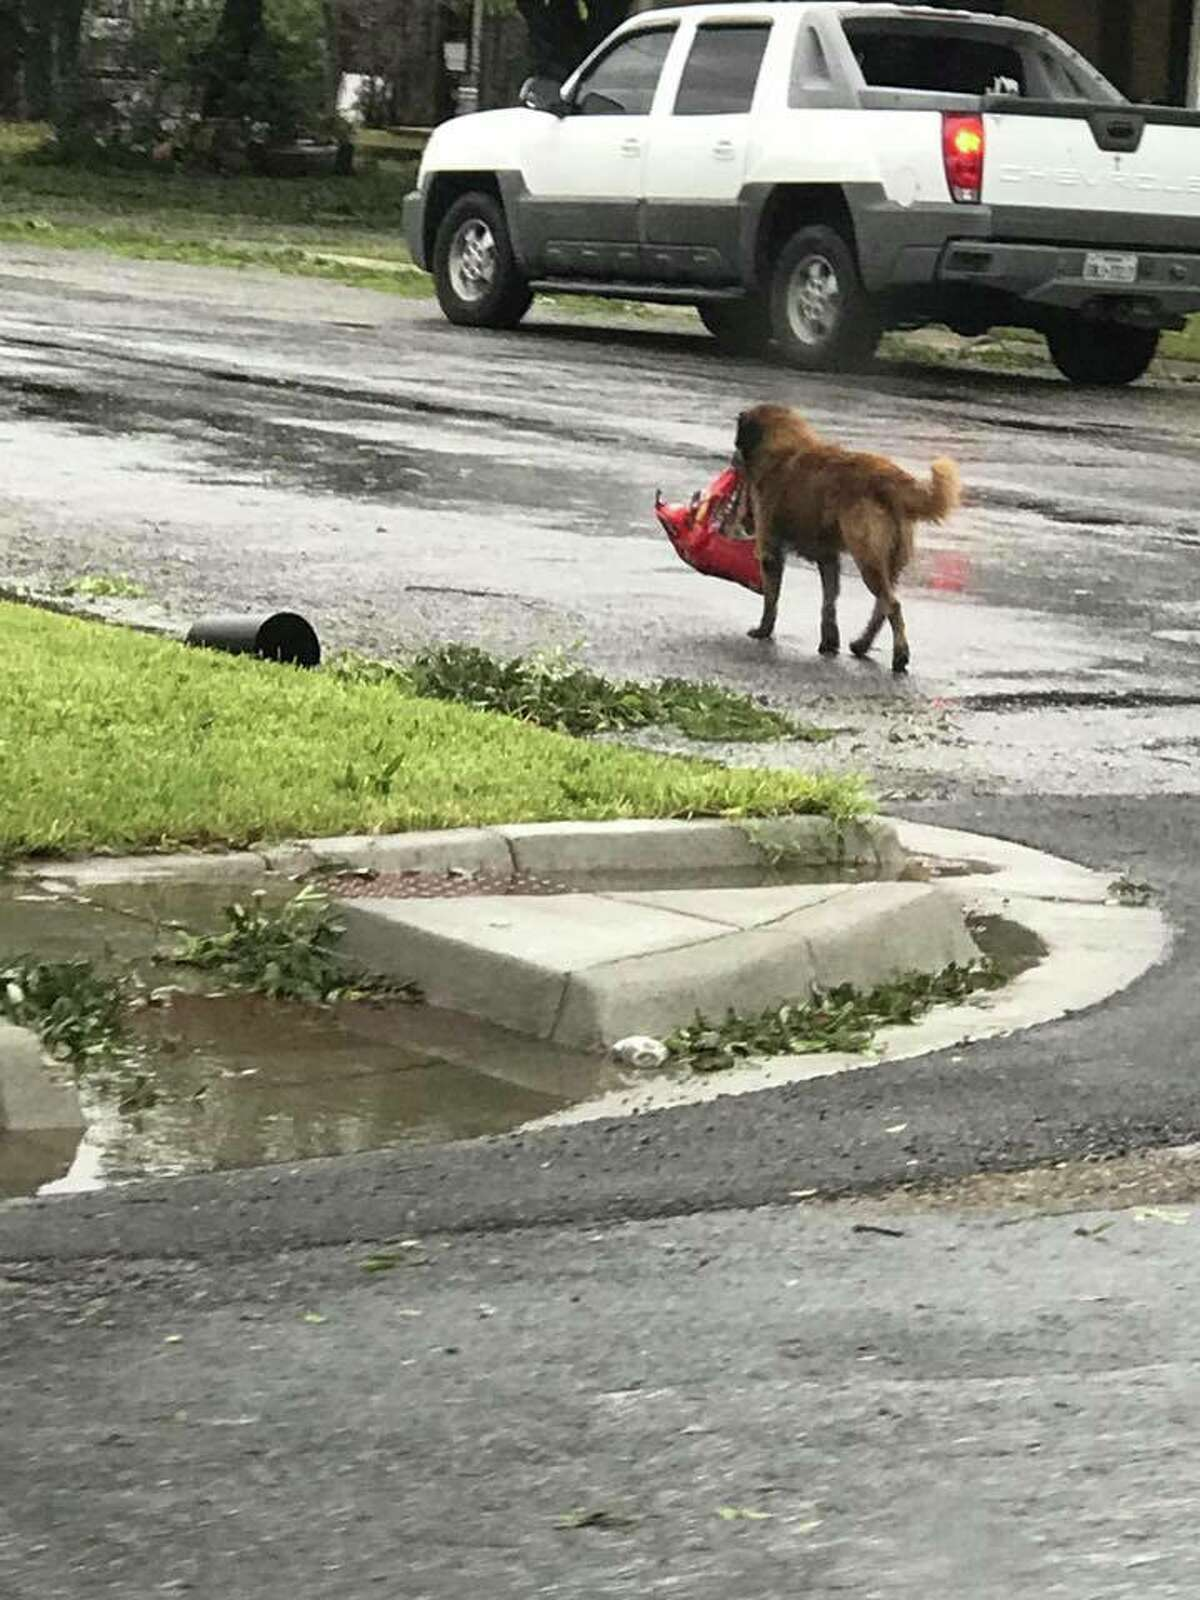 Hurricane Harvey couldn't keep Otis the dog down.